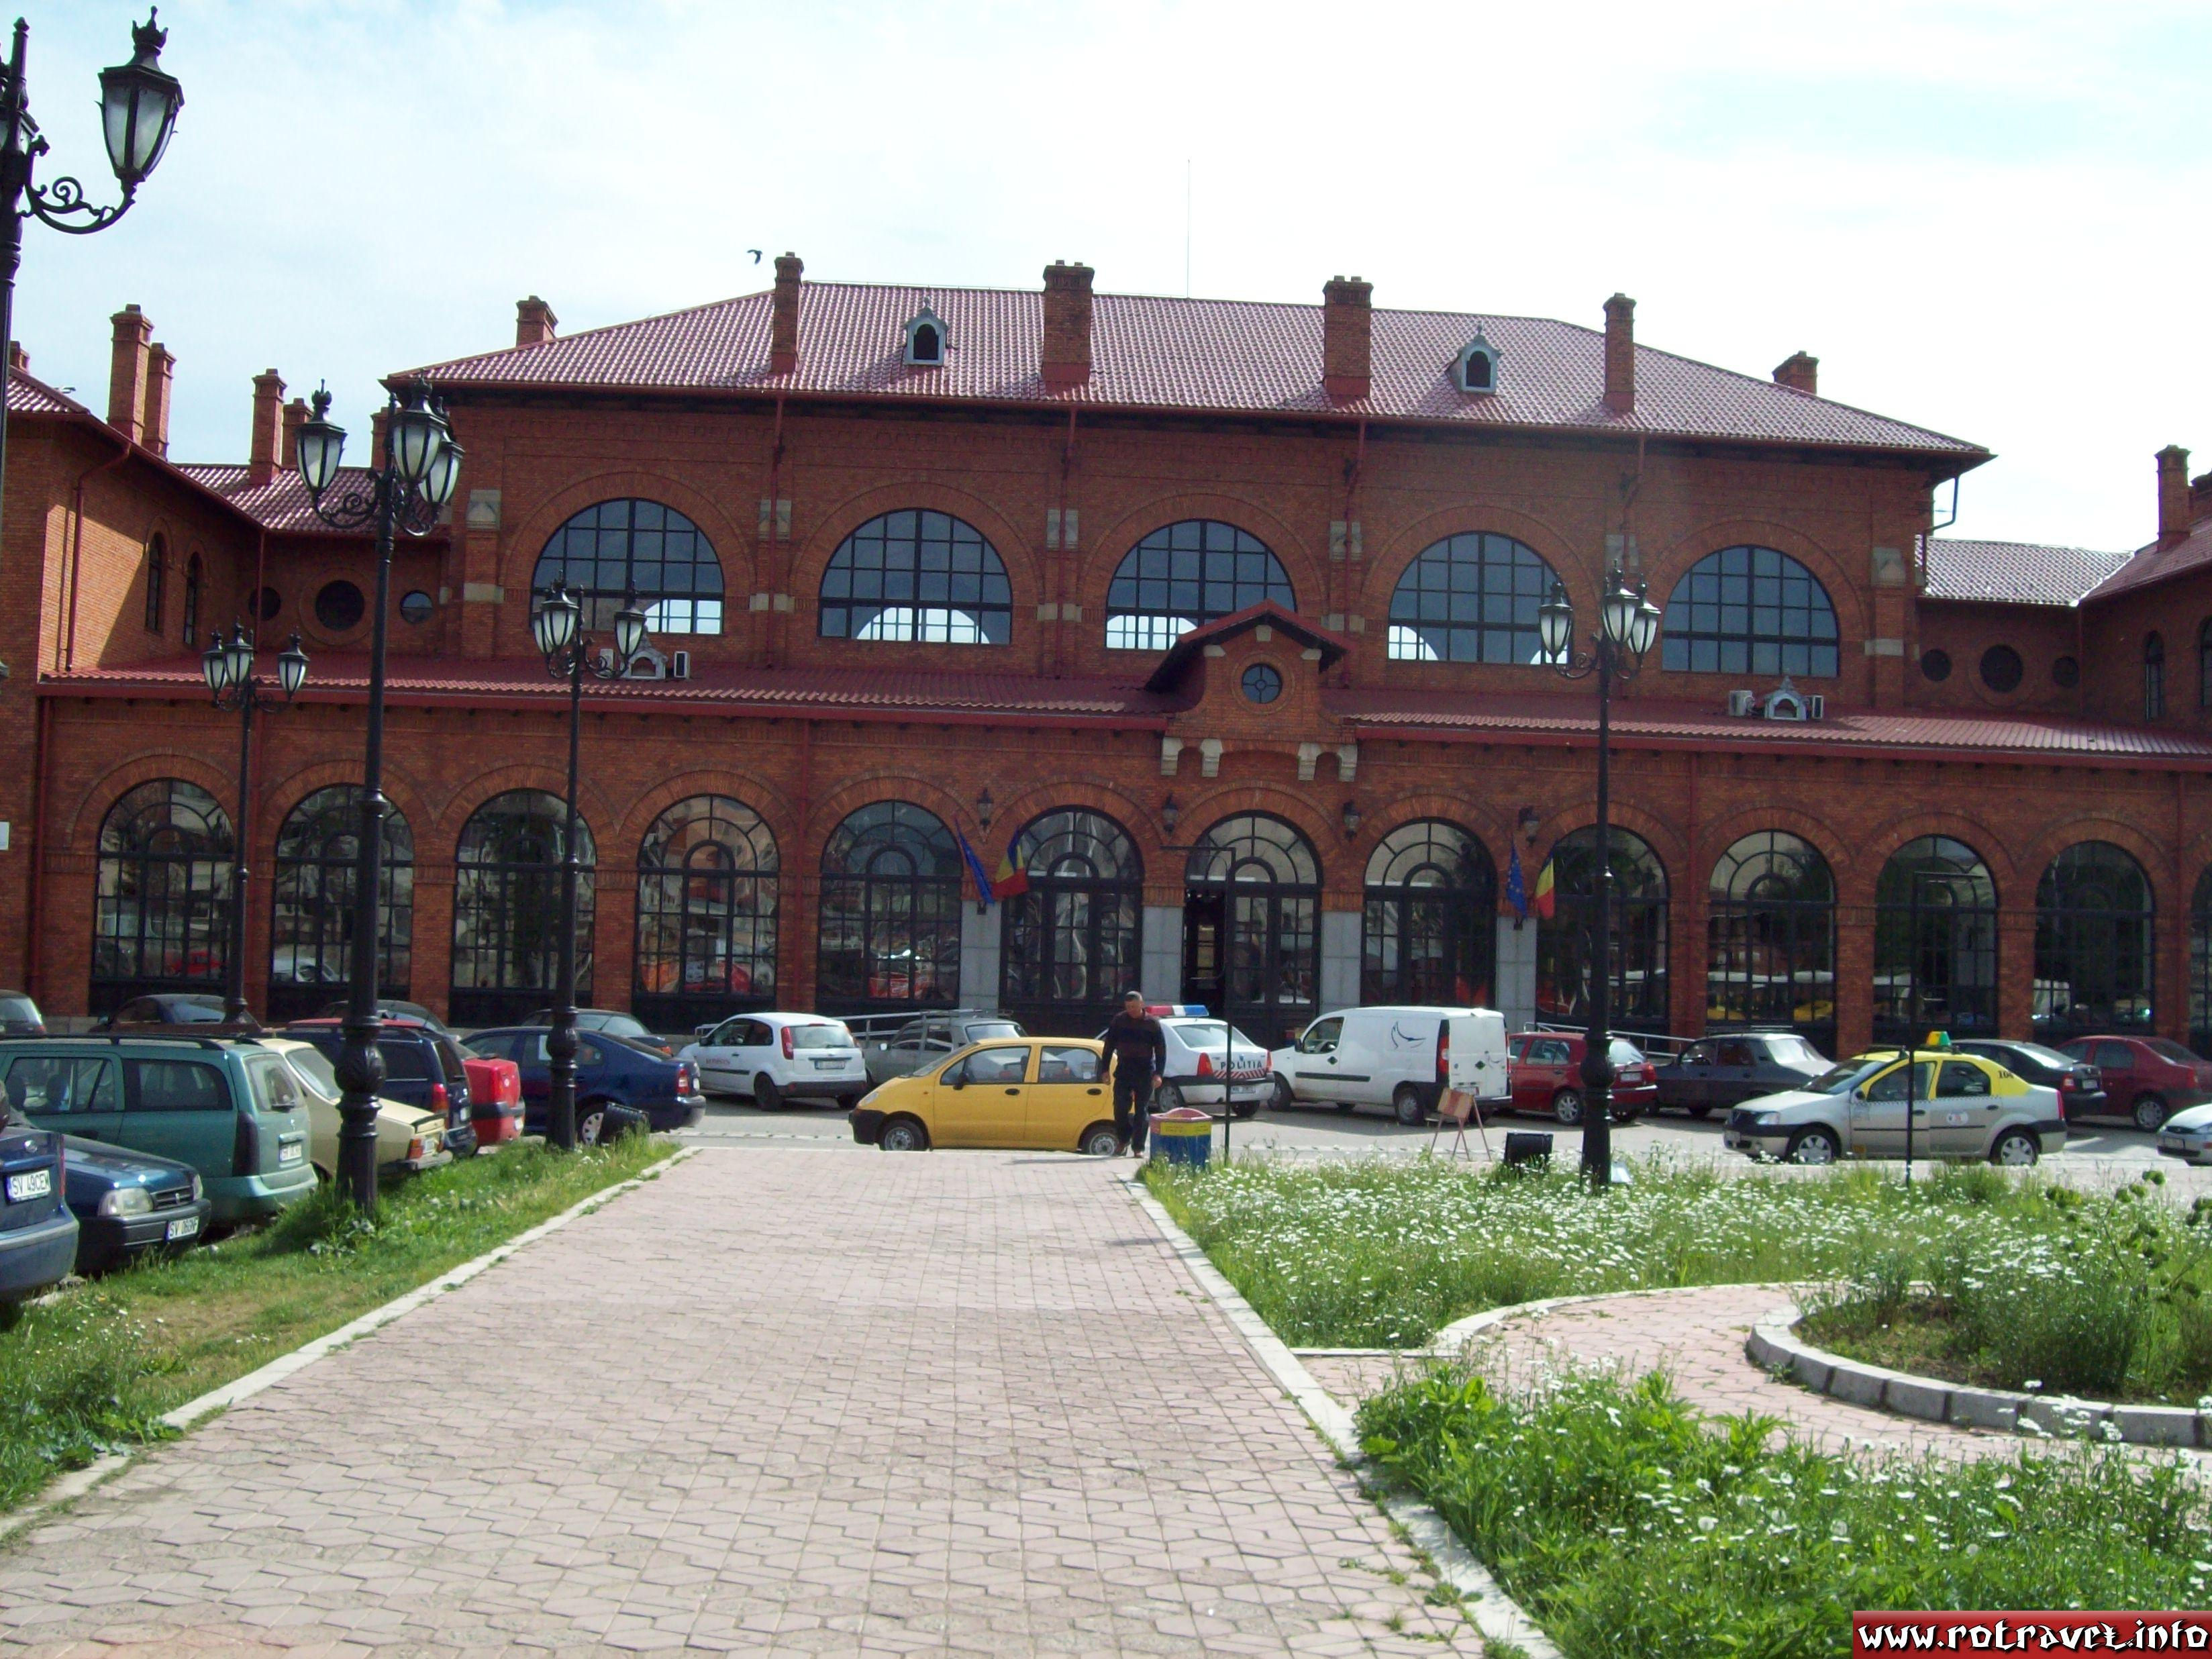 Suceava-Burdujeni railway station